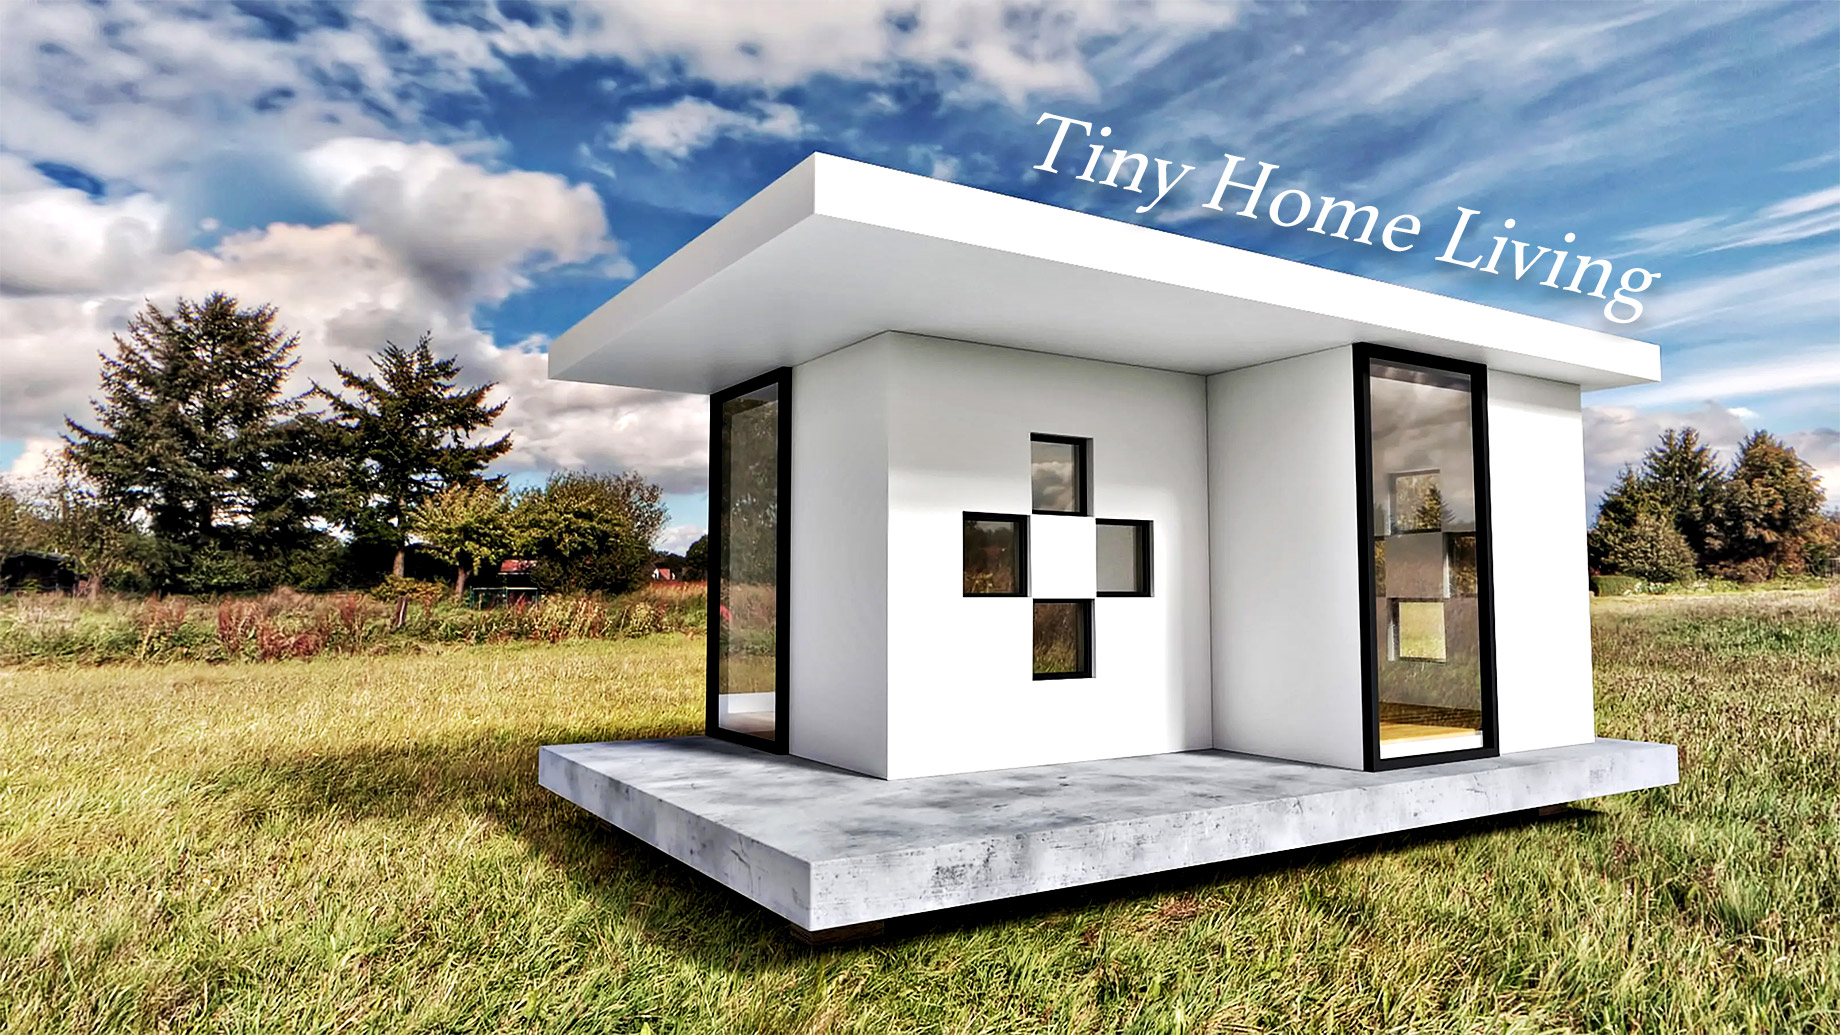 Tiny Home Living - 7 Good Reasons Why You Might Consider Giving It a Shot